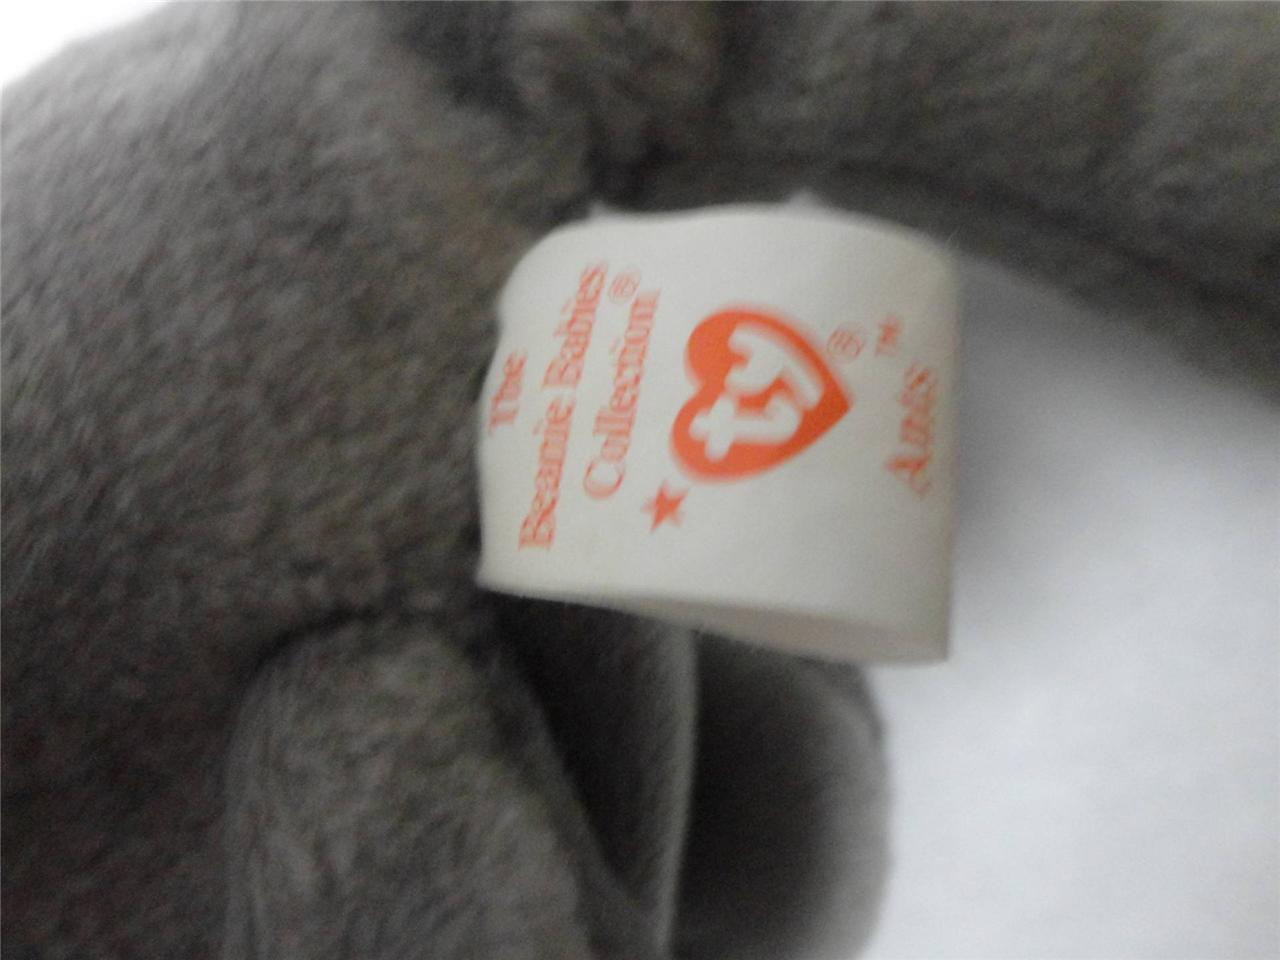 TY Beanie Babies Roary 1996 Ants 1997 Wise 1997 Goochy 1998 wtih Tags Lot of 4